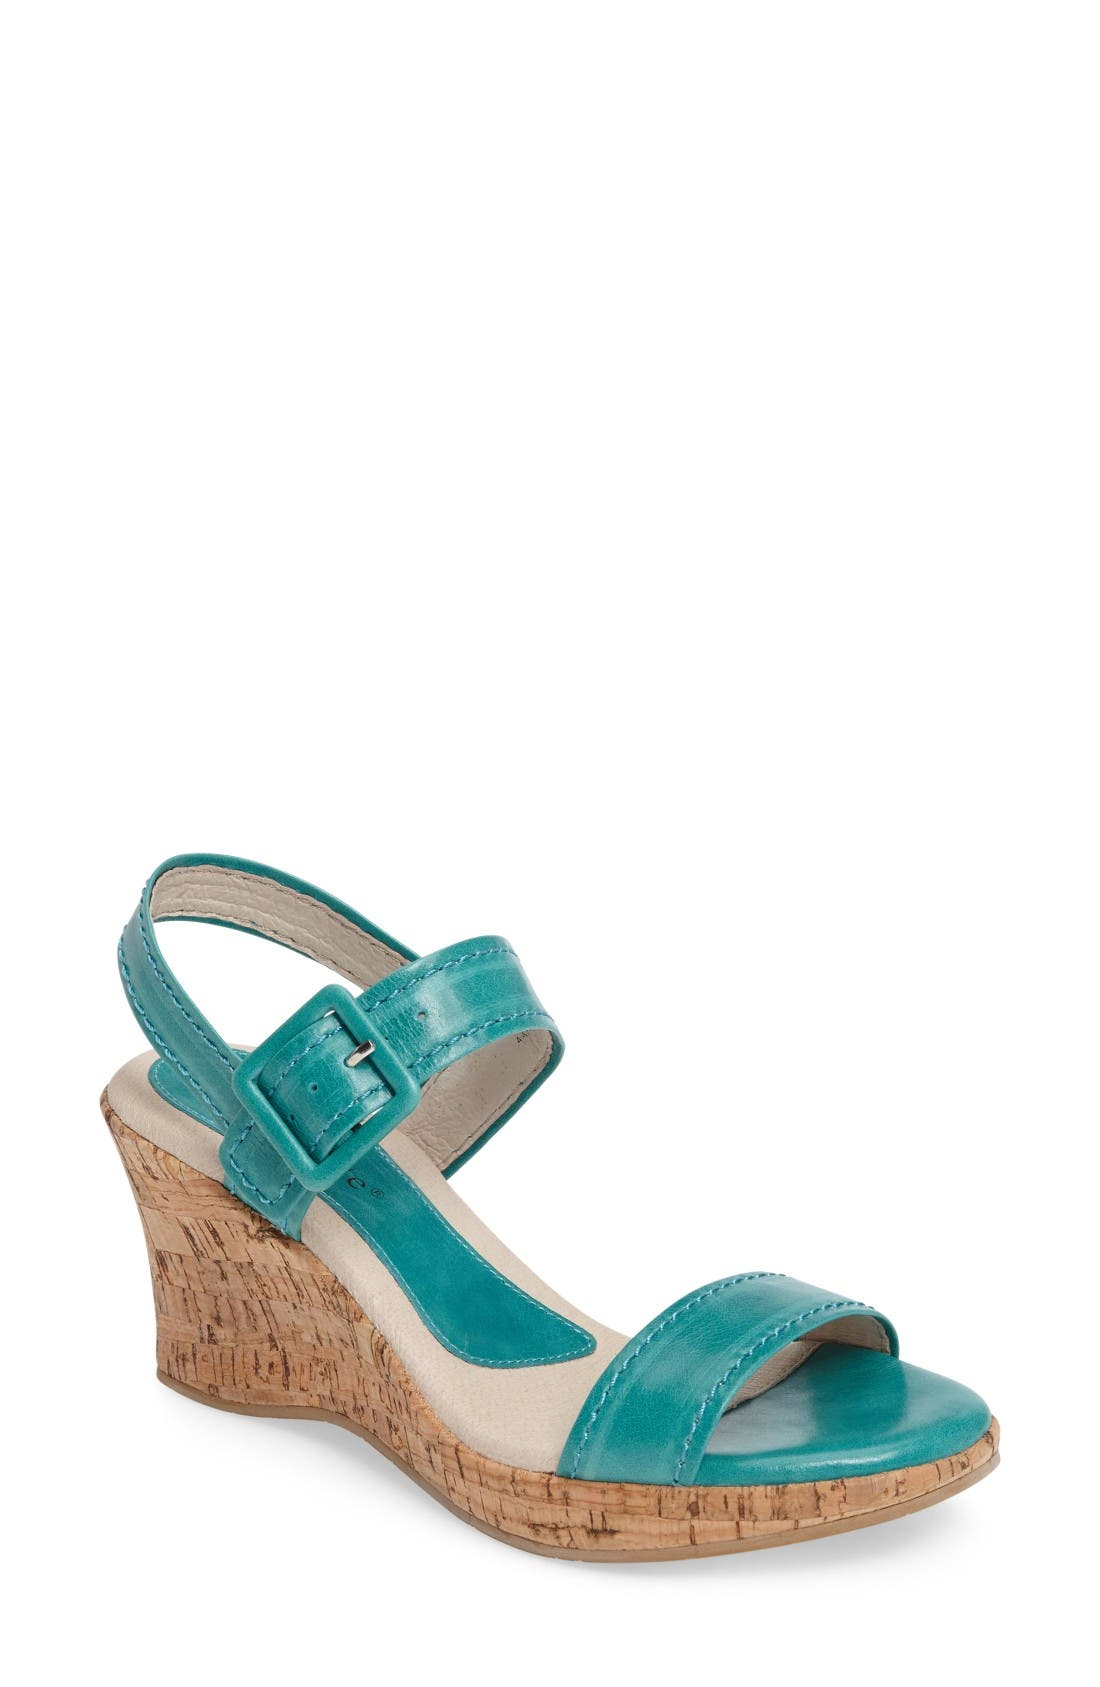 David Tate Newport Wedge Sandal (Women)